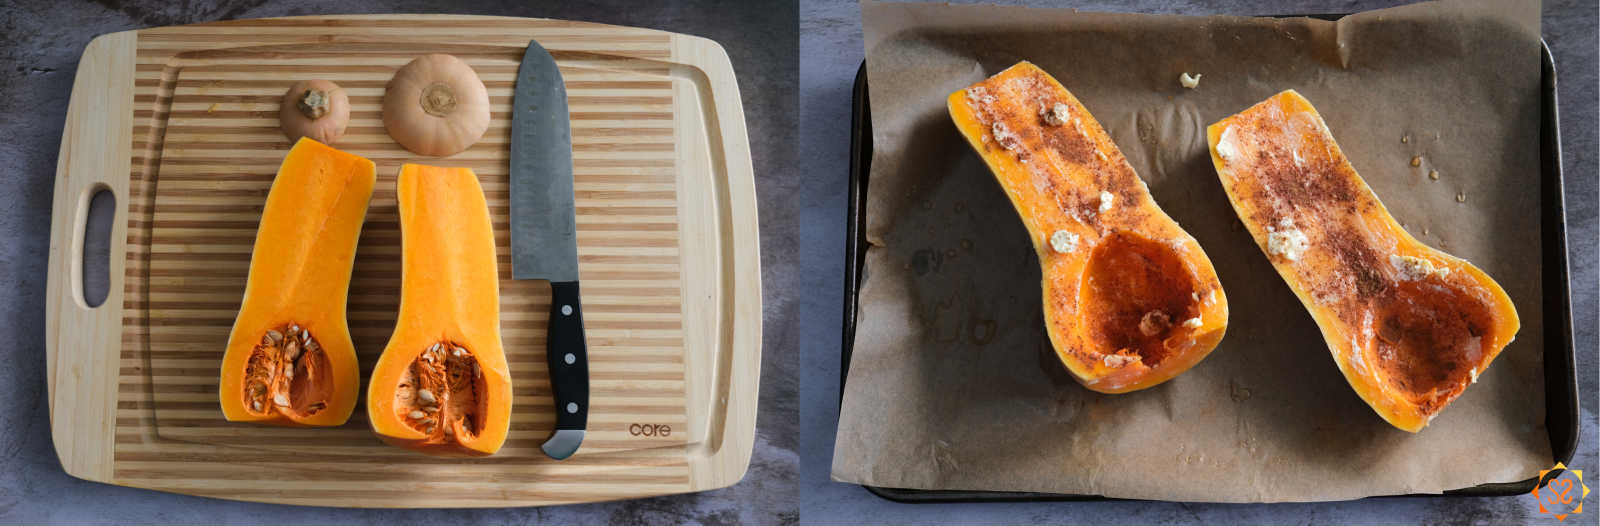 On the left, a butternut squash is cut in half on a cutting board with the top and bottom of the squash above the squash and a knife to the right; on the right: butternut squash rubbed with vegan butter and sprinkled with cinnamon on a parchment-lined baking tray.